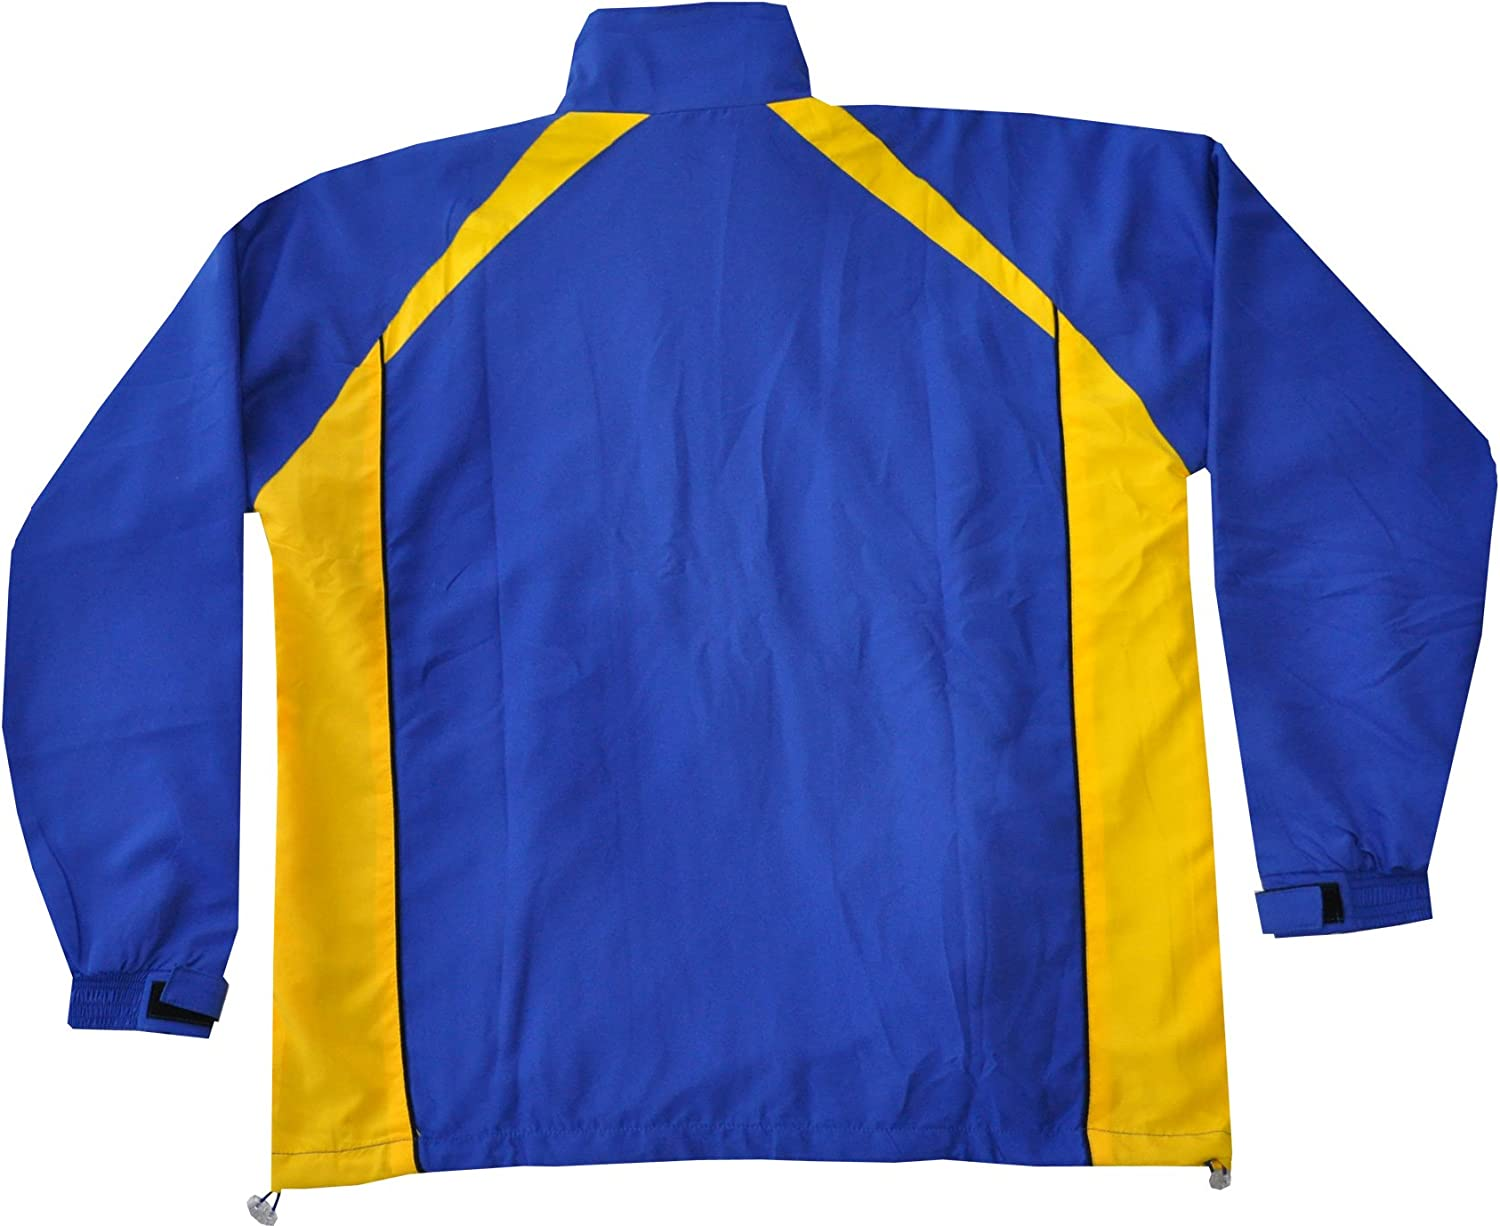 Track Suit Barbados colors